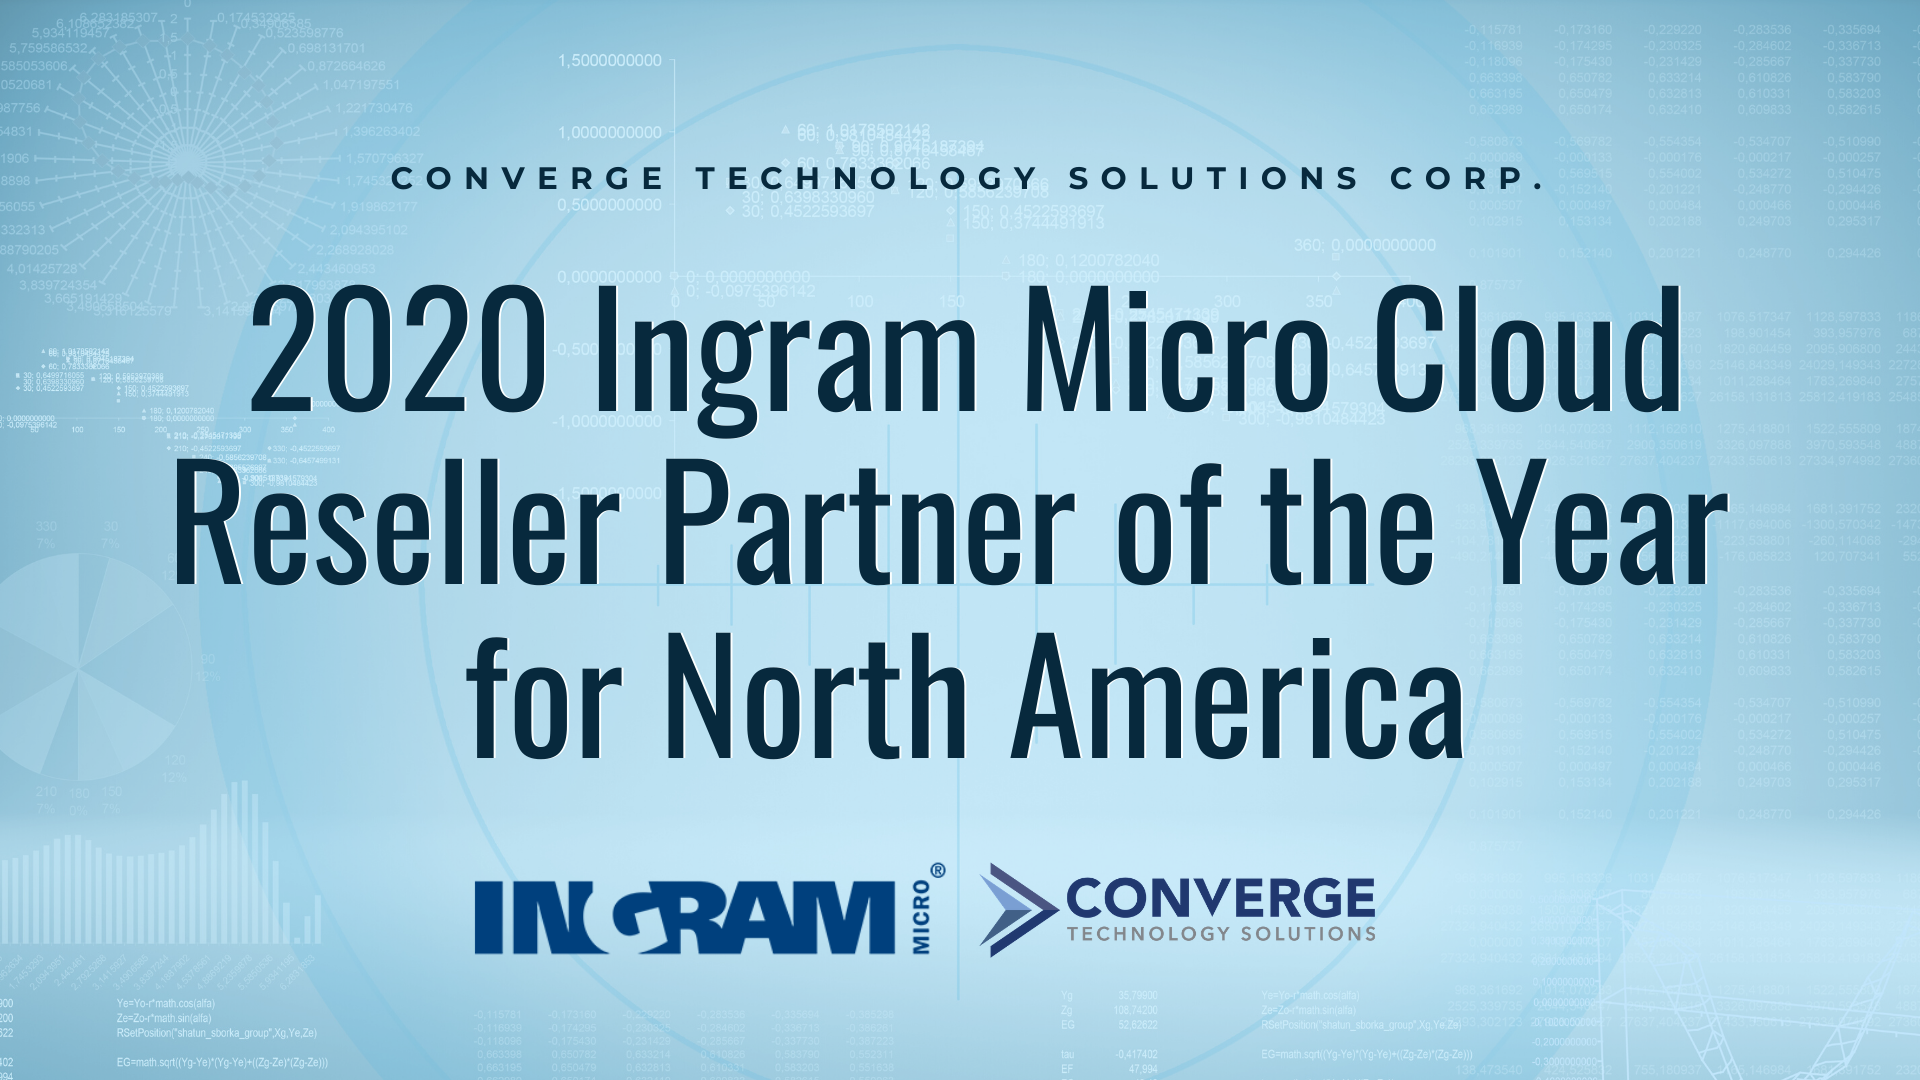 Converge Wins 2020 Ingram Micro Cloud Reseller Partner of the year for North America